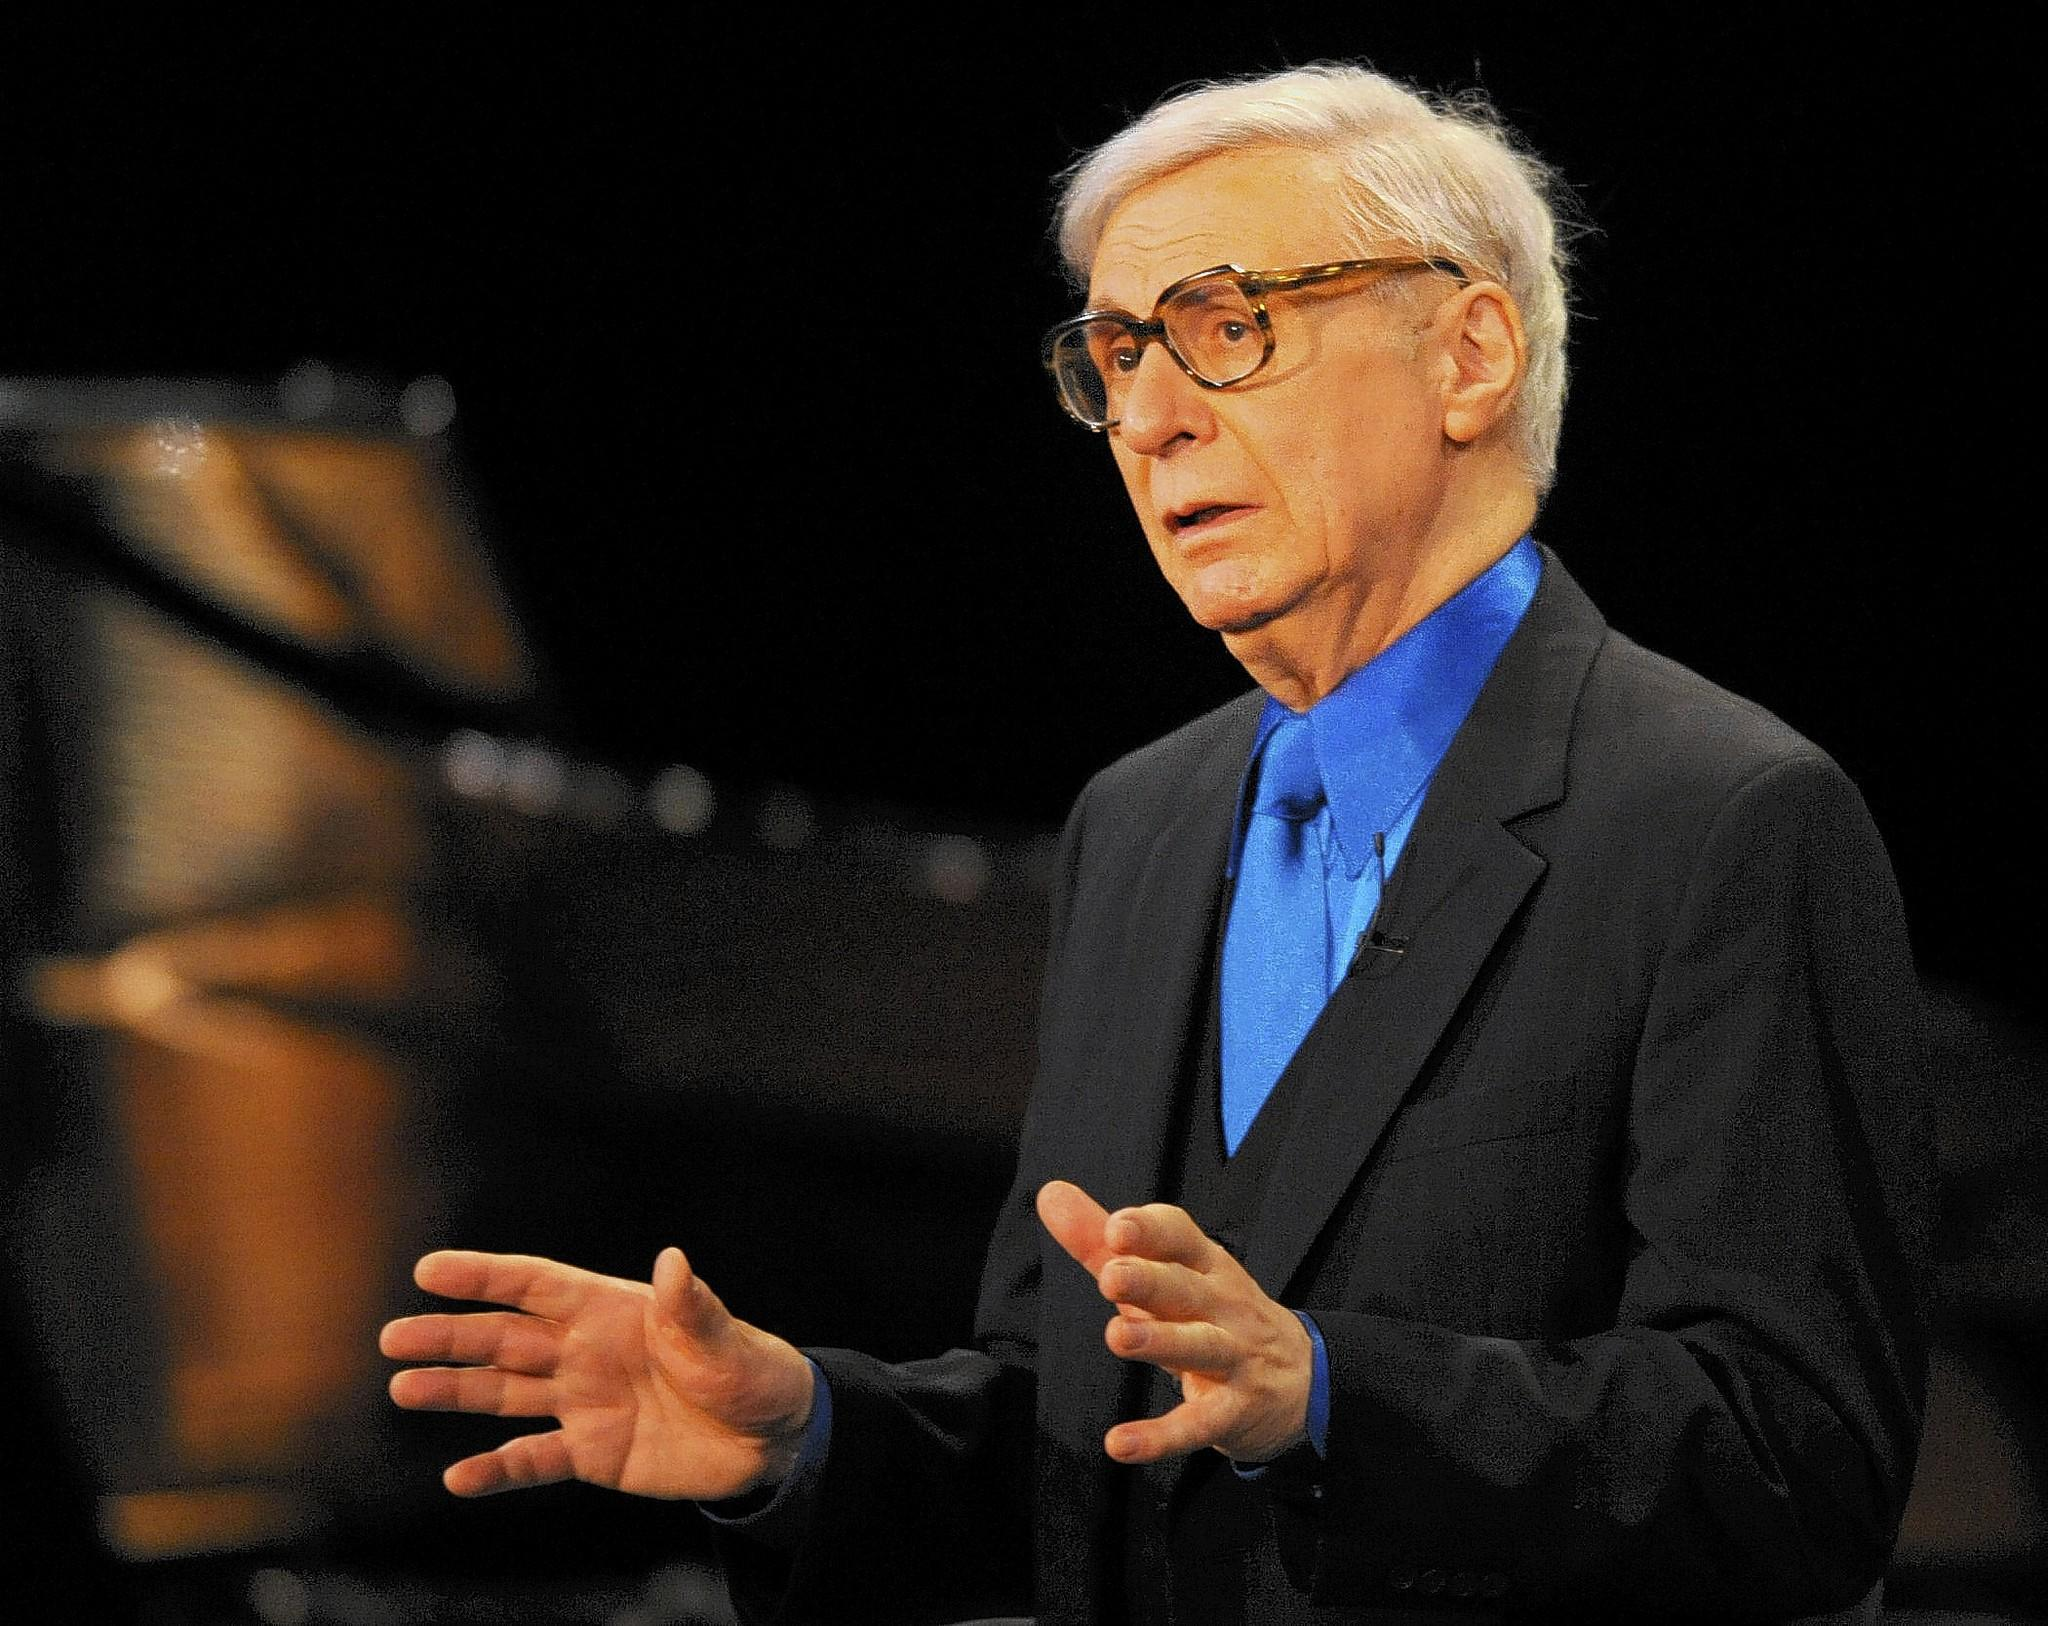 The Amazing Kreskin has some bleak predictions for 2014.